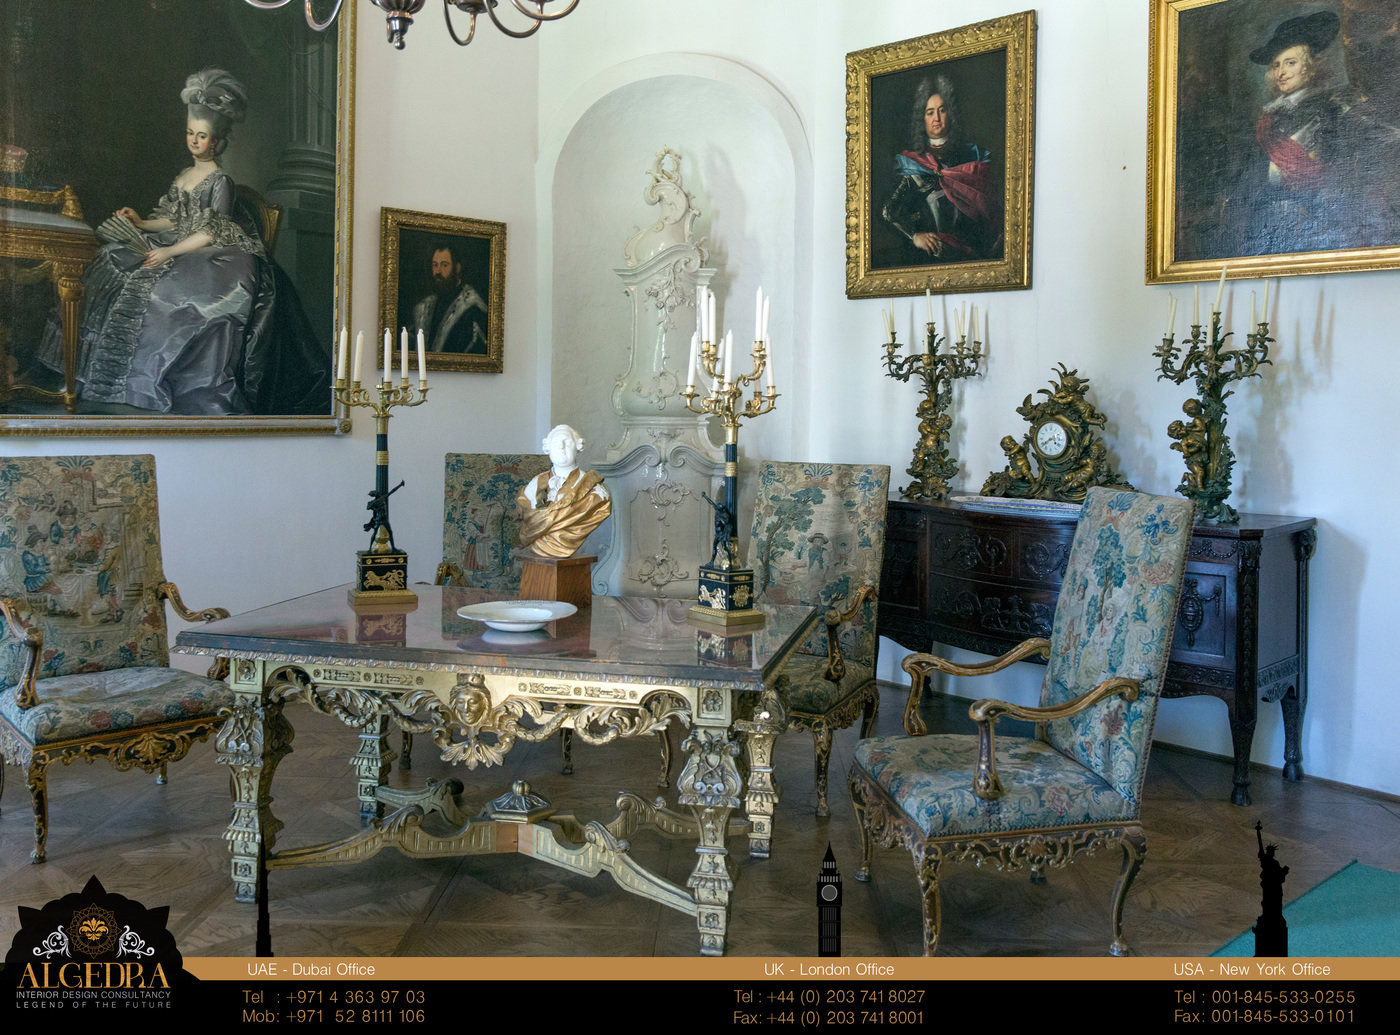 Stupendous Rococo Style By Algedra Interior Design By Algedra Interior Best Image Libraries Weasiibadanjobscom